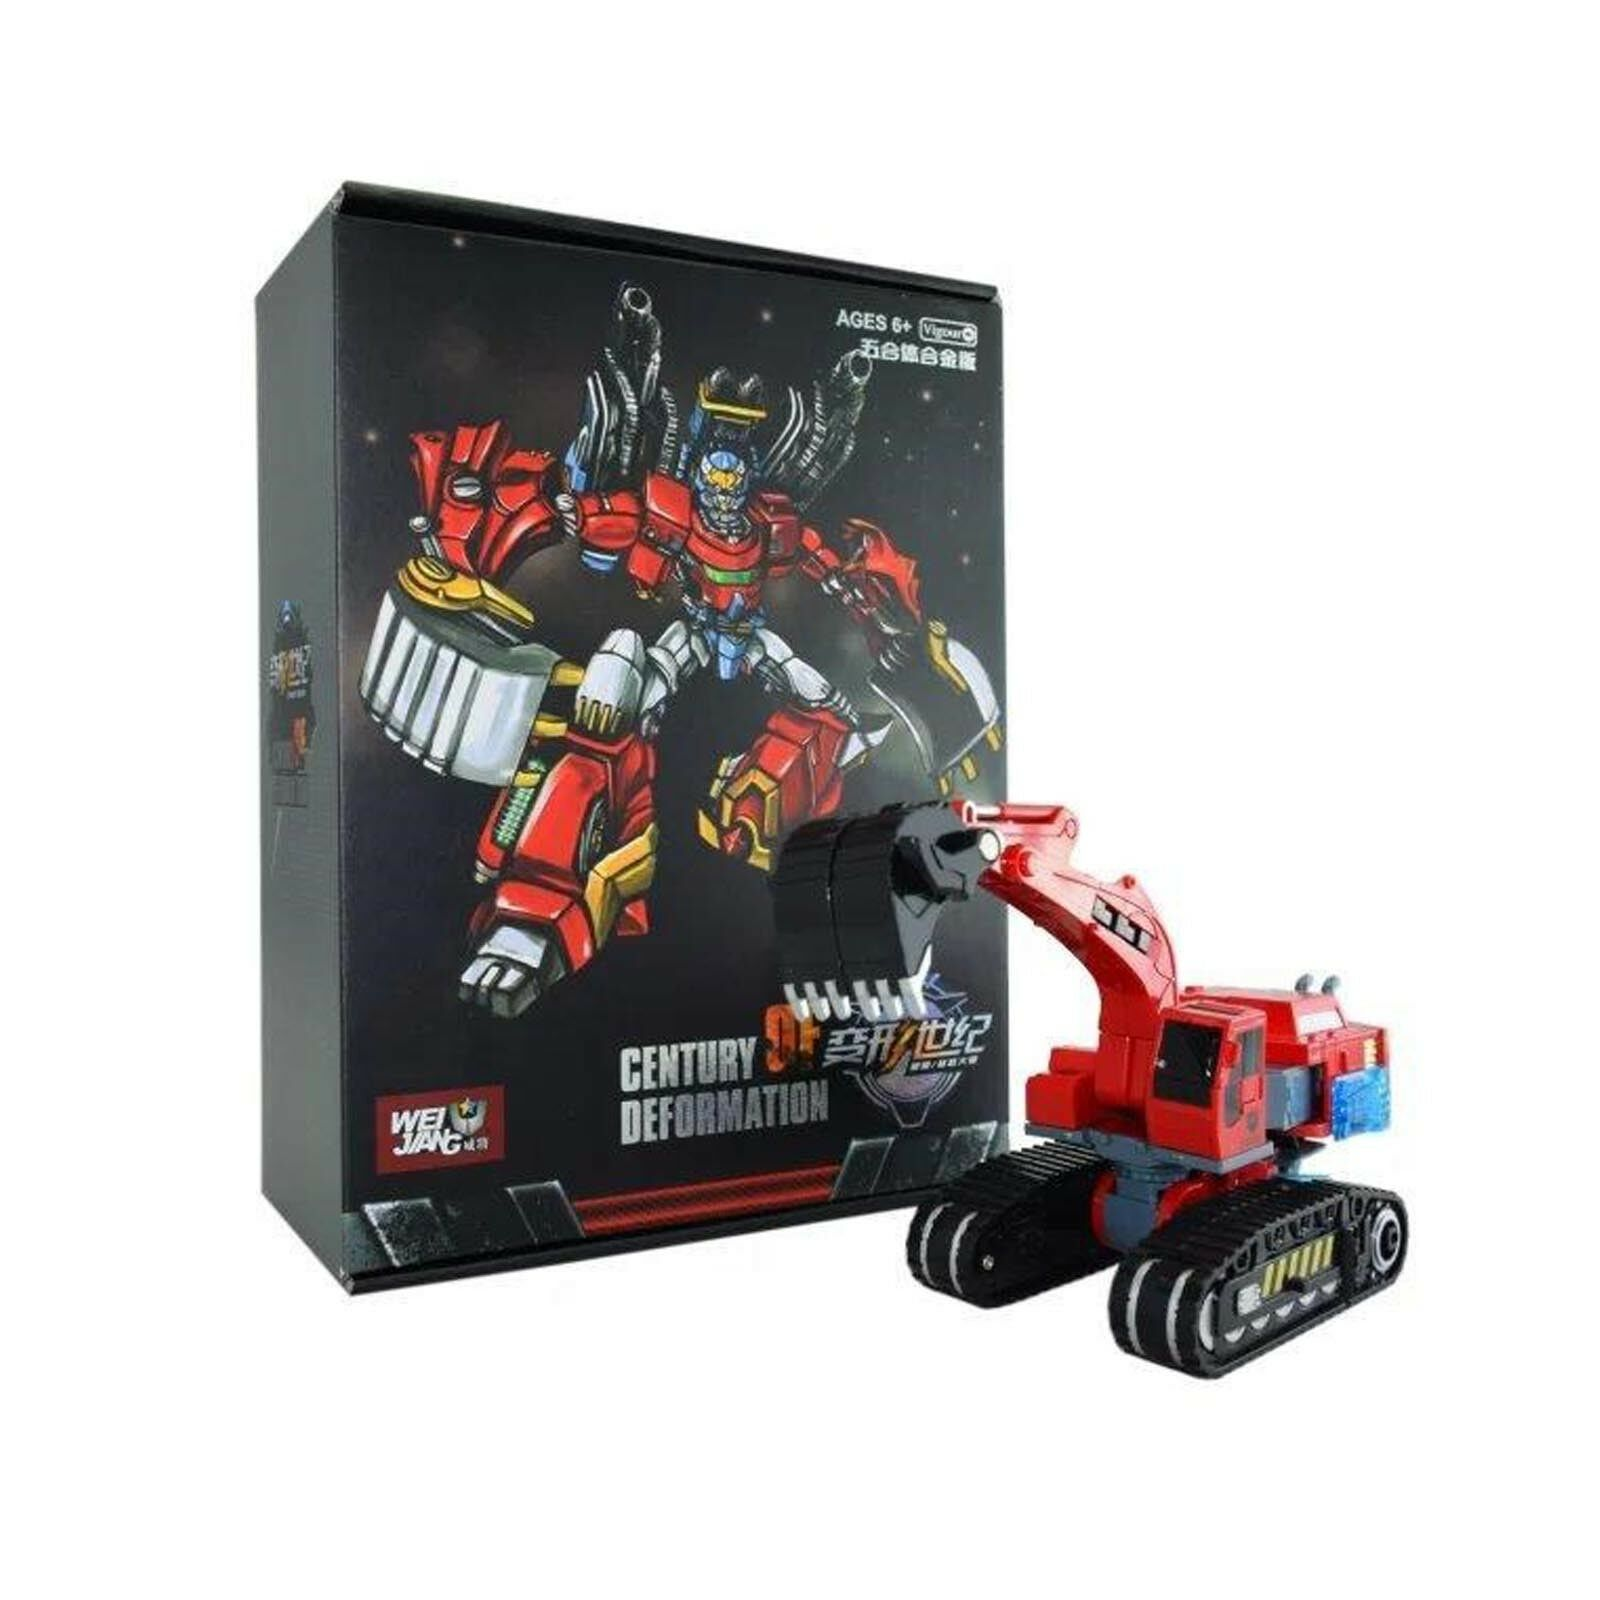 Transformers WEIJIANG Century of of of deformation Digger Excavator Cars Toys Gift Kid 4fbf23